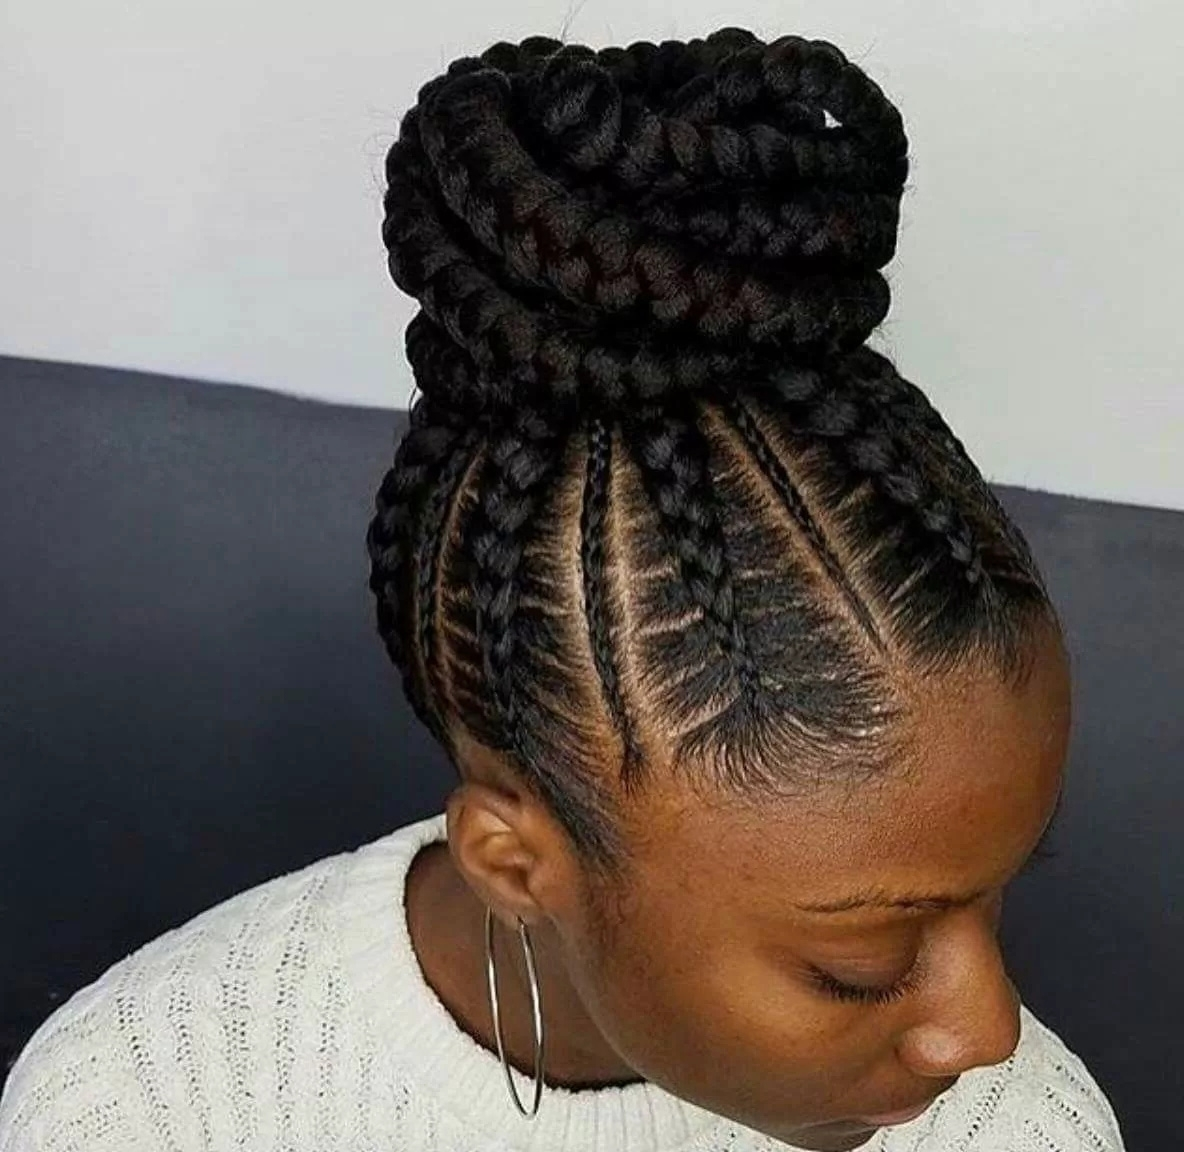 Top 10 African Braiding Hairstyles For Ladies (Photos) – Information For Newest African Braided Hairstyles (View 15 of 15)